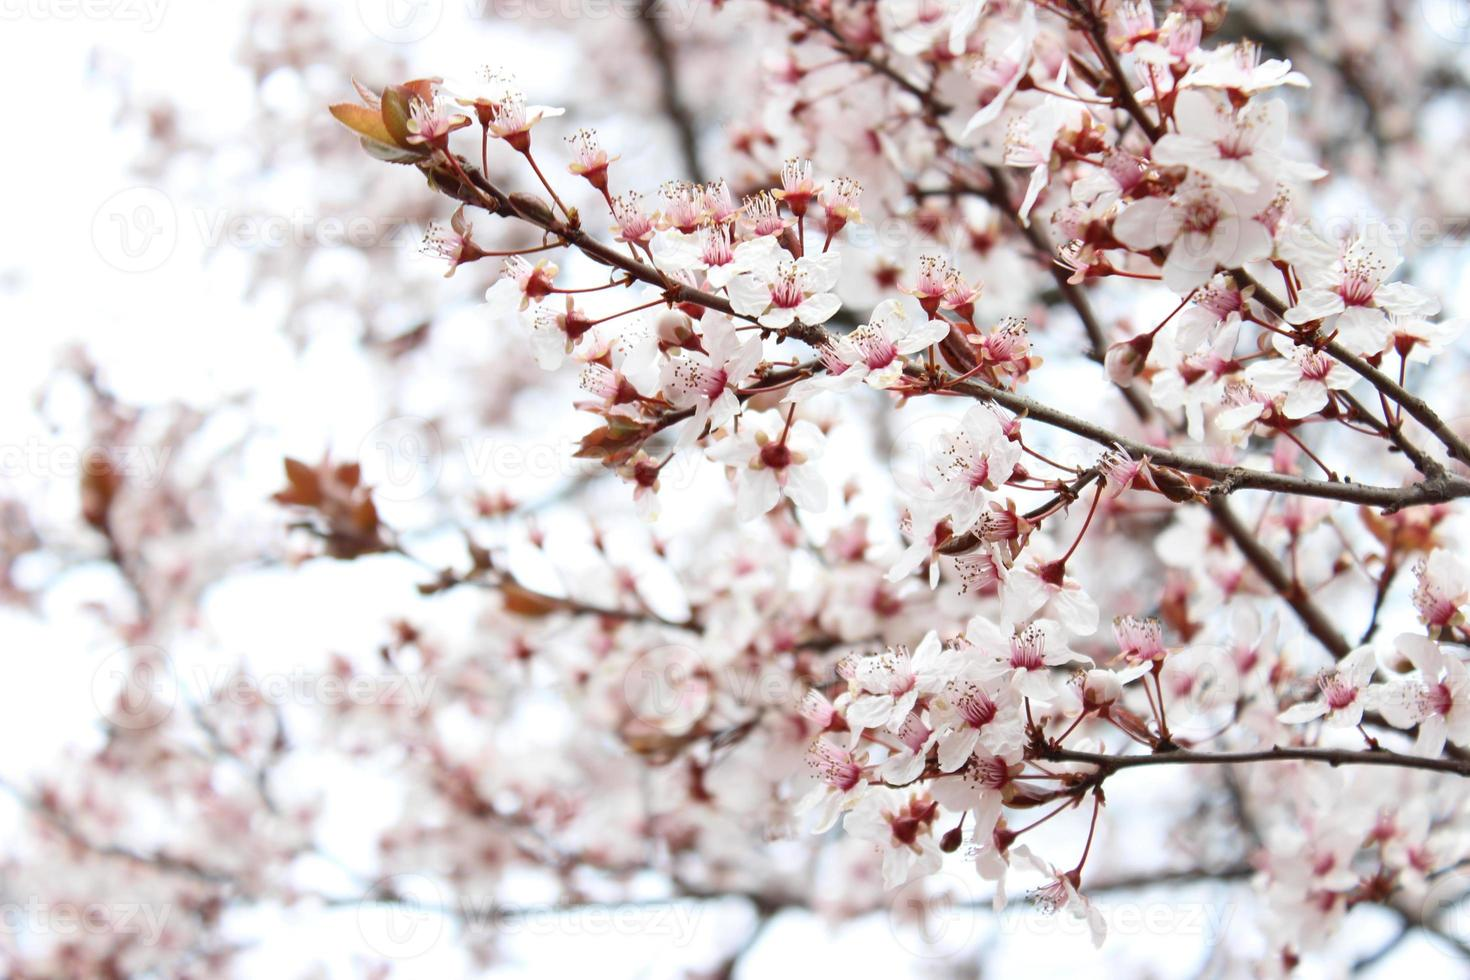 Blooming Apricot tree photo